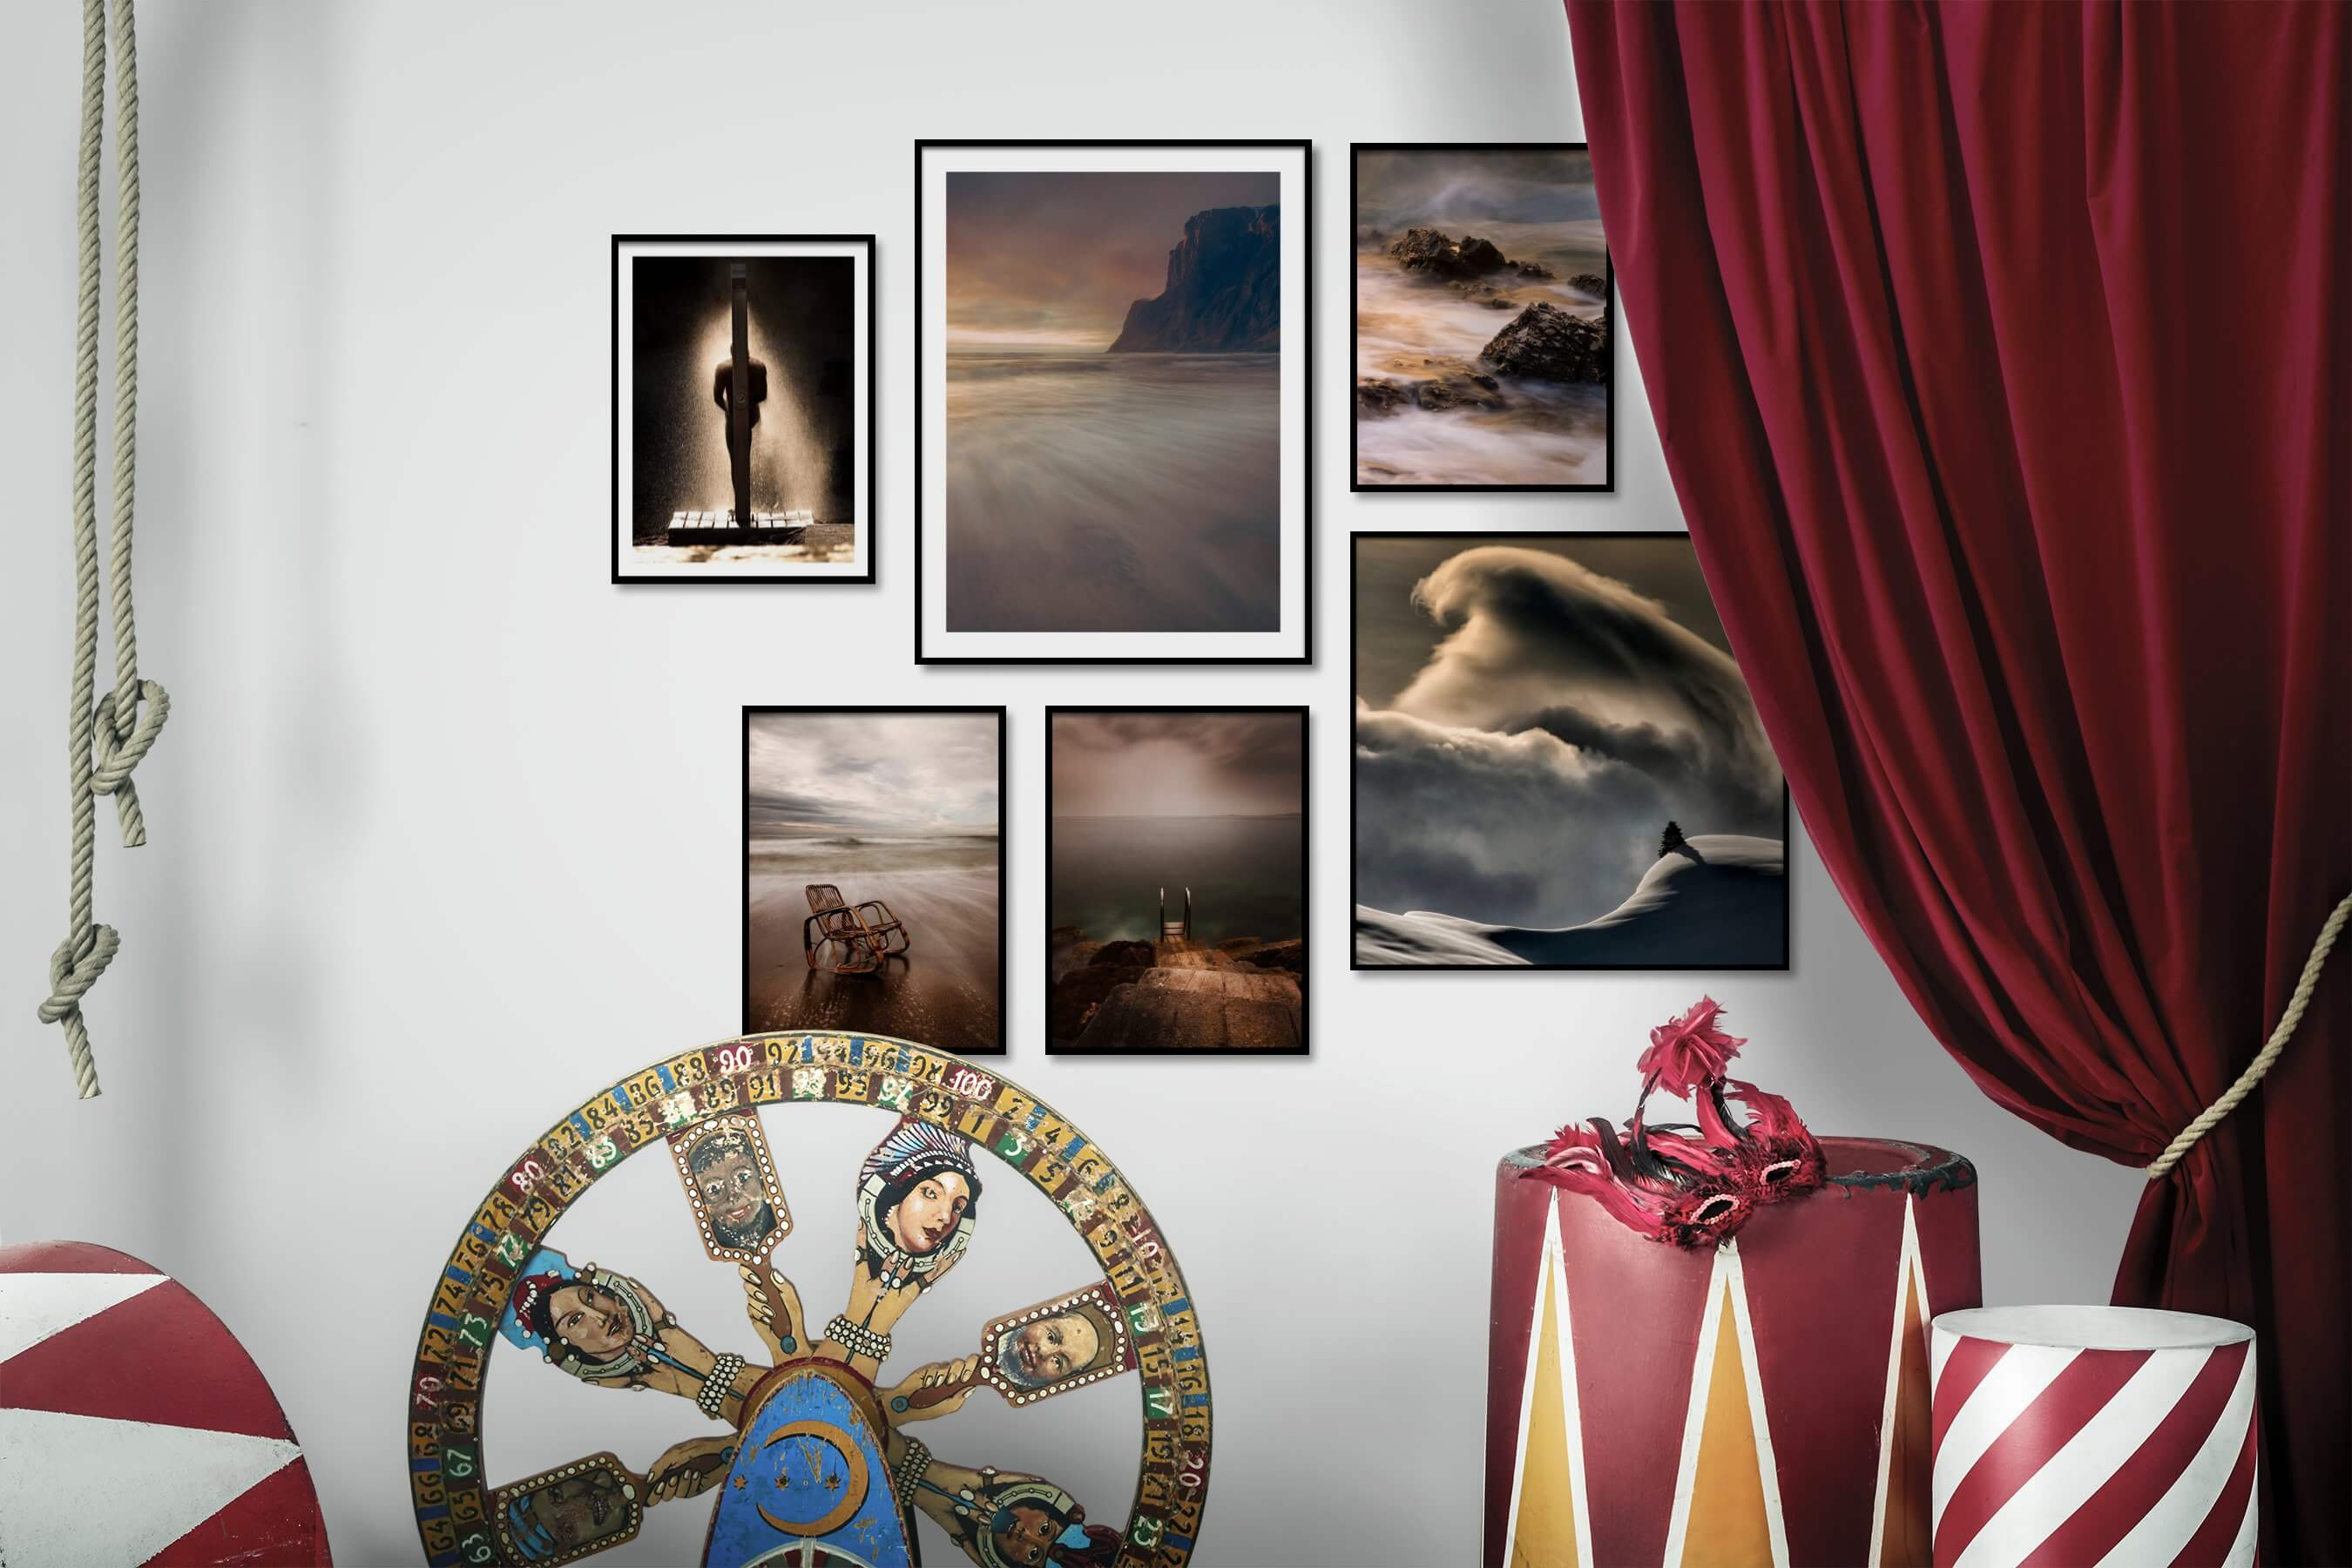 Gallery wall idea with six framed pictures arranged on a wall depicting For the Moderate, Beach & Water, Mindfulness, and Nature